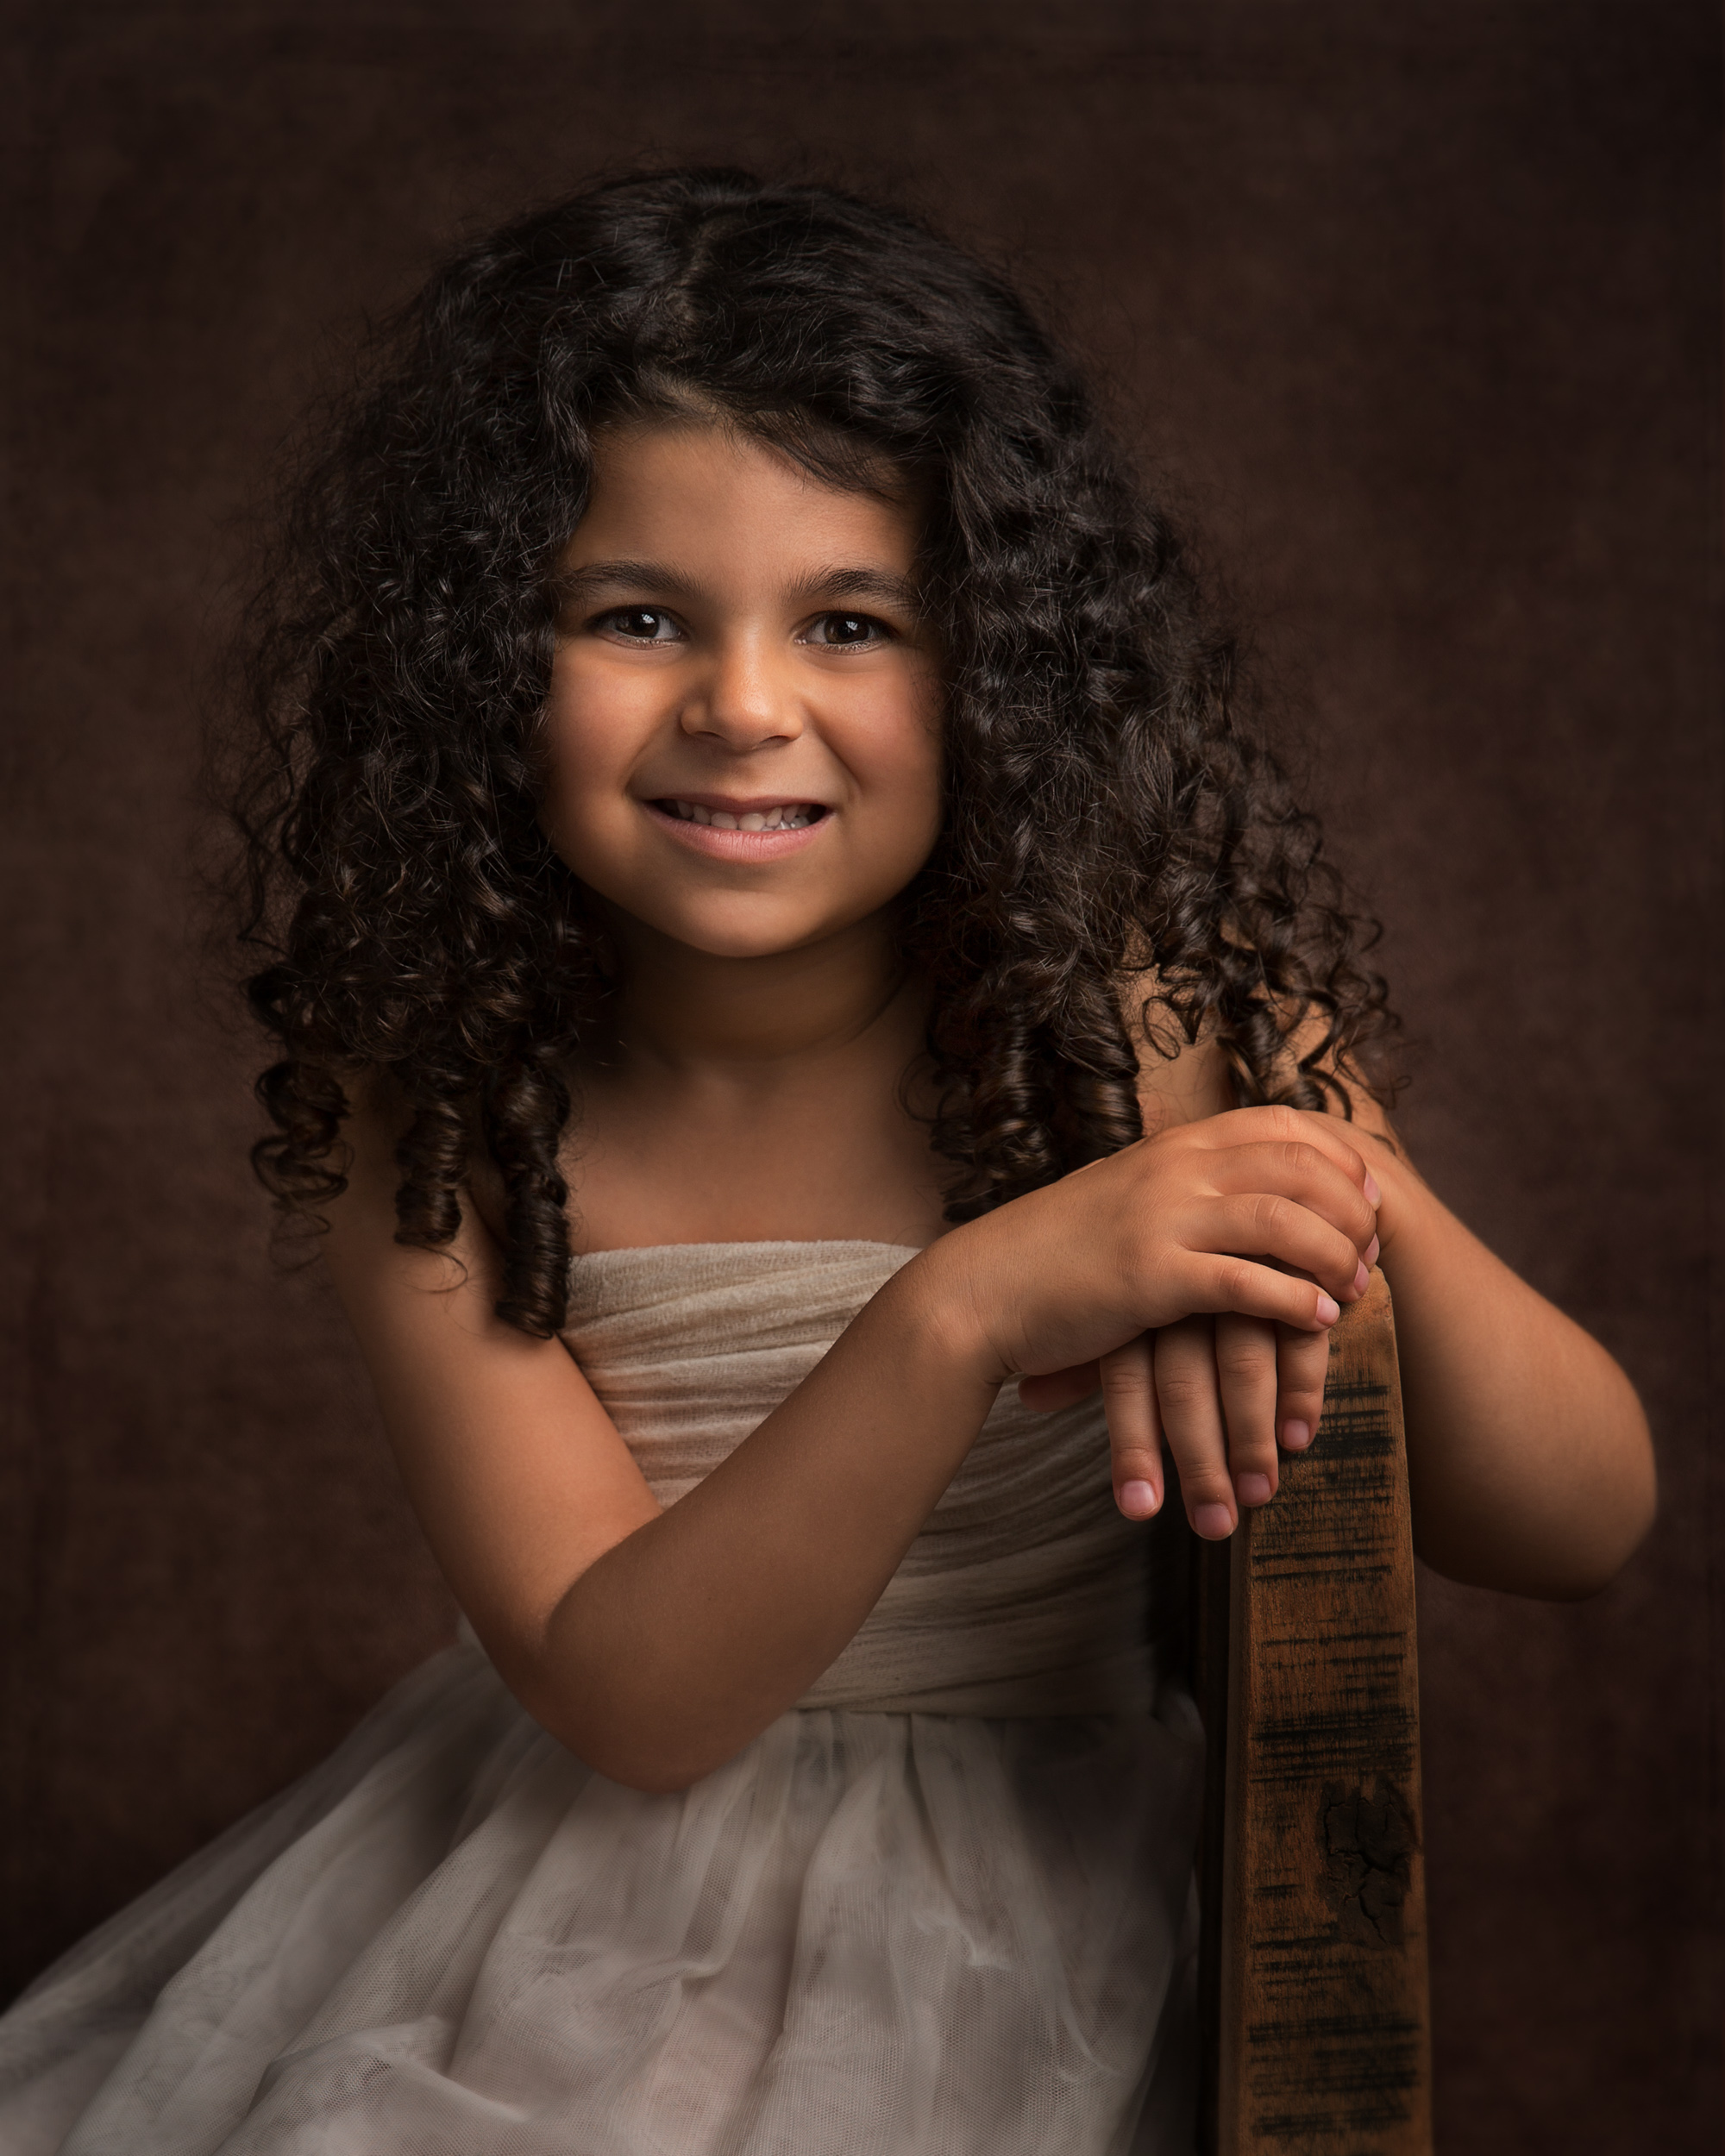 Beautiful little girl with curly hair taken during a family portrait session in Cheshire